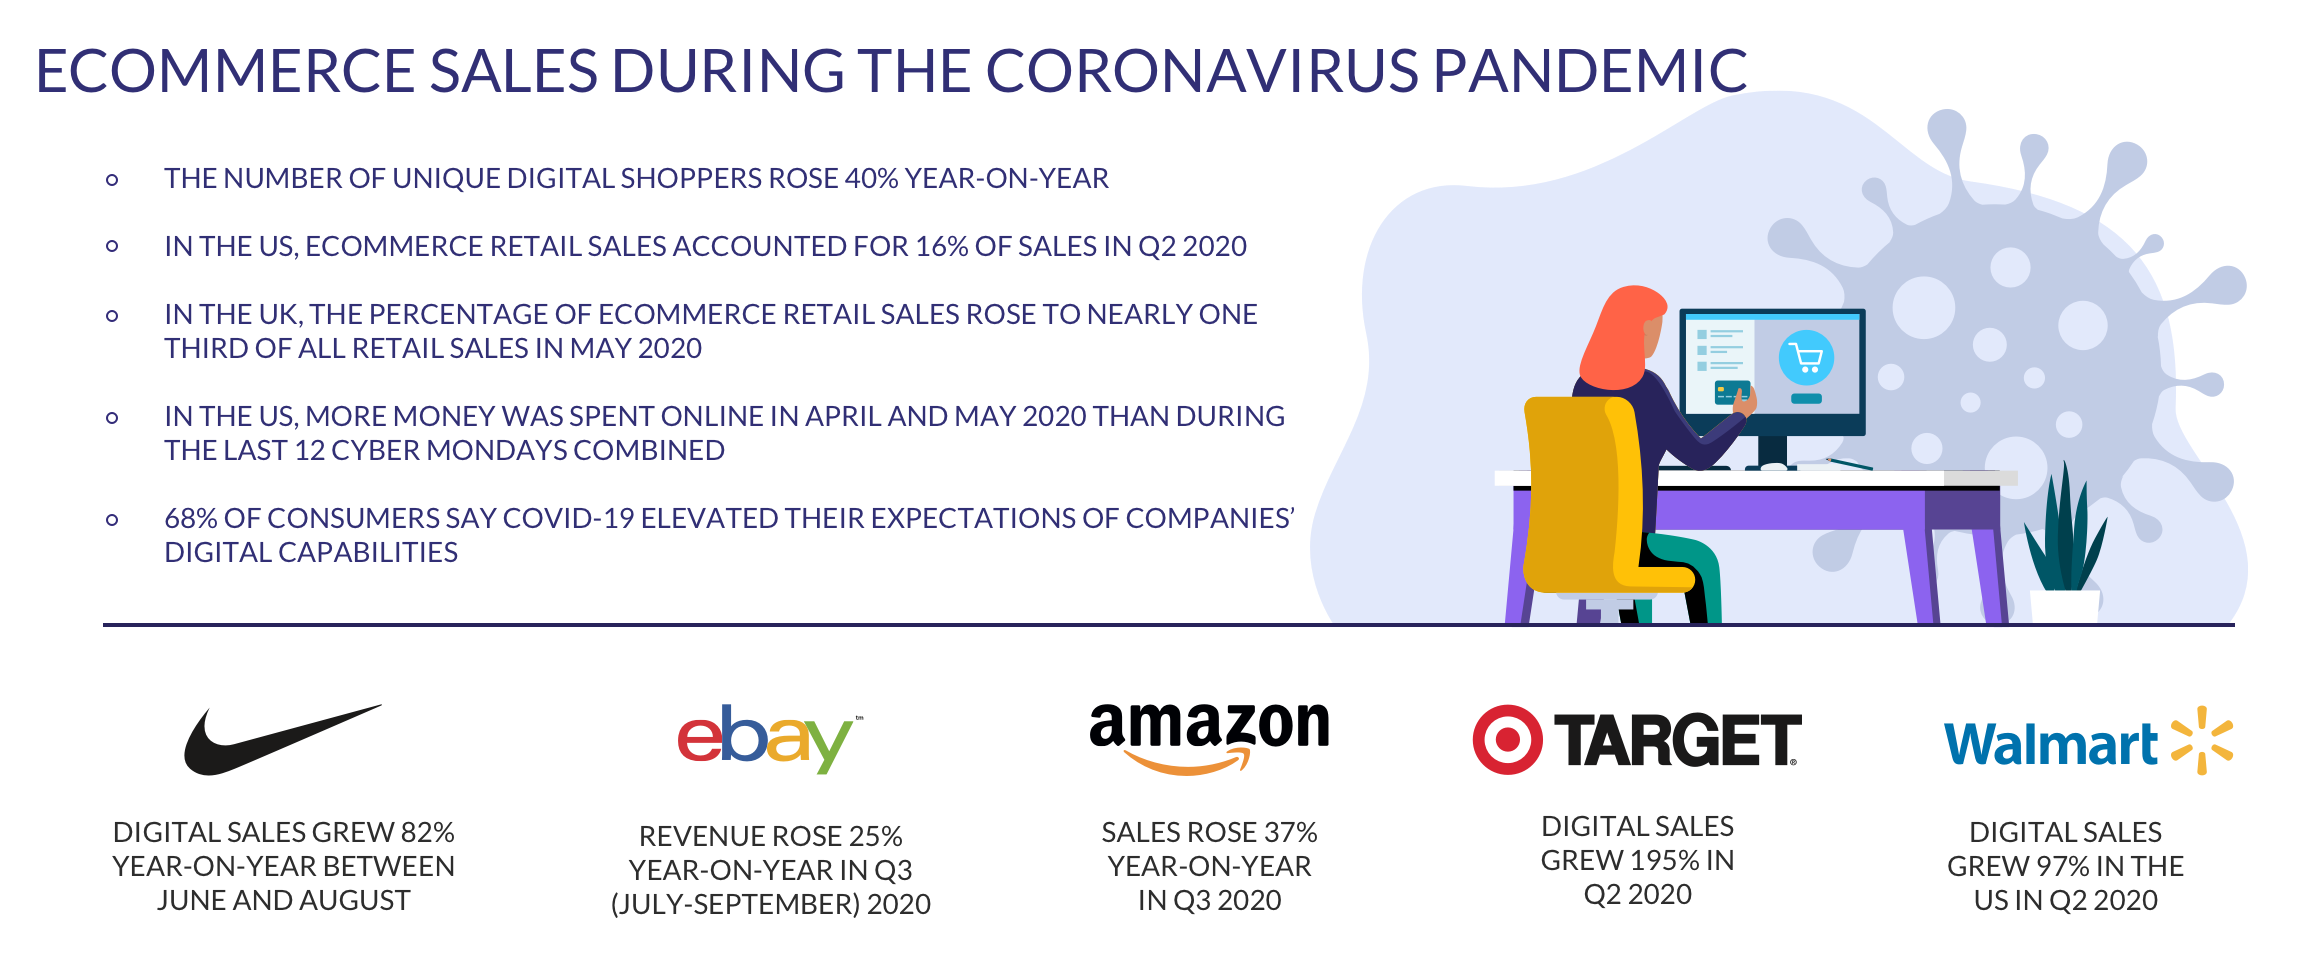 ecommerce sales during the coronavirus pandemic